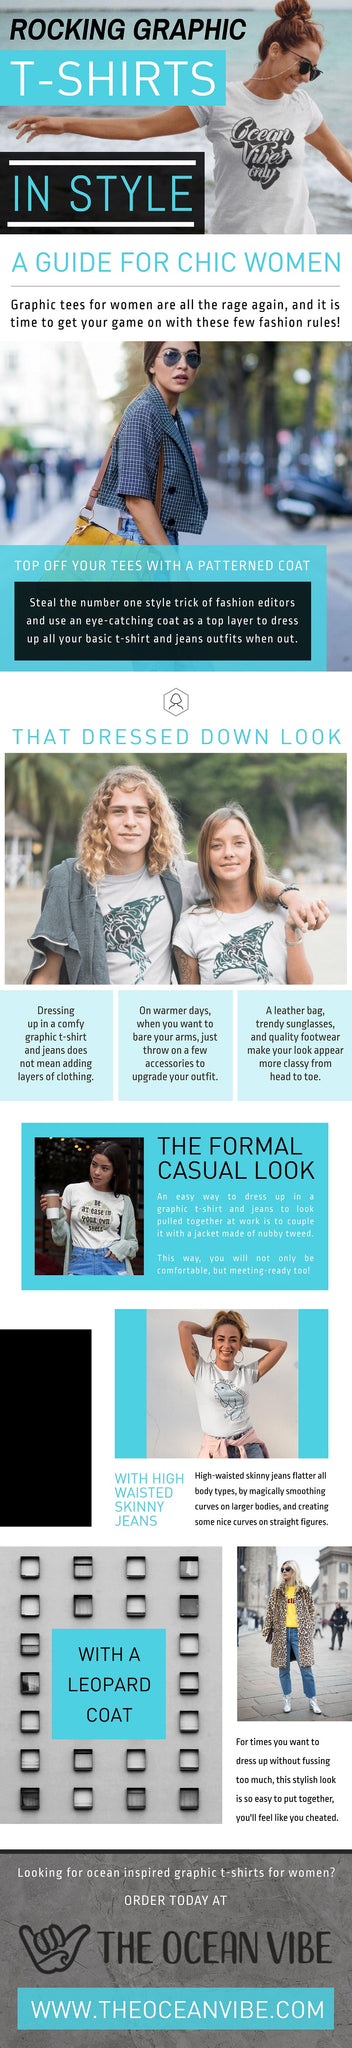 Image showing infographic for ocean themed shirts